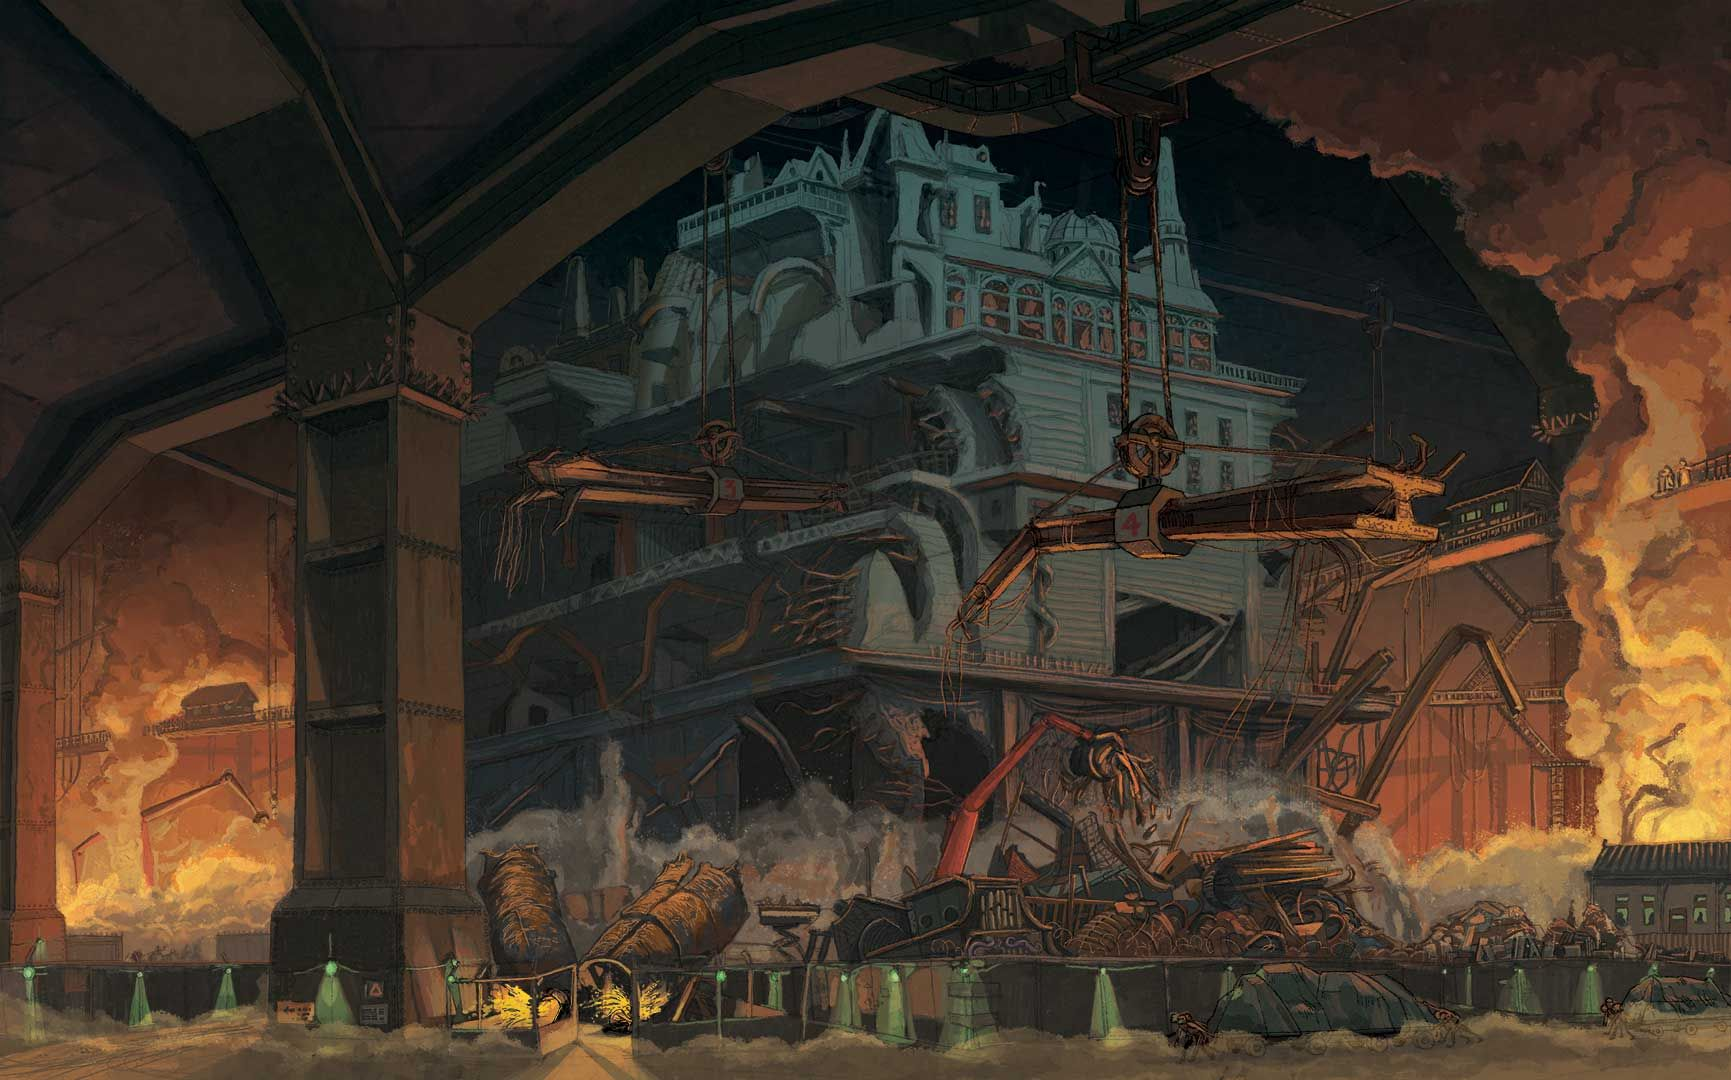 The Gut'. Mortal Engines. London the traction city giant, drags smaller towns into its undercarriage, and